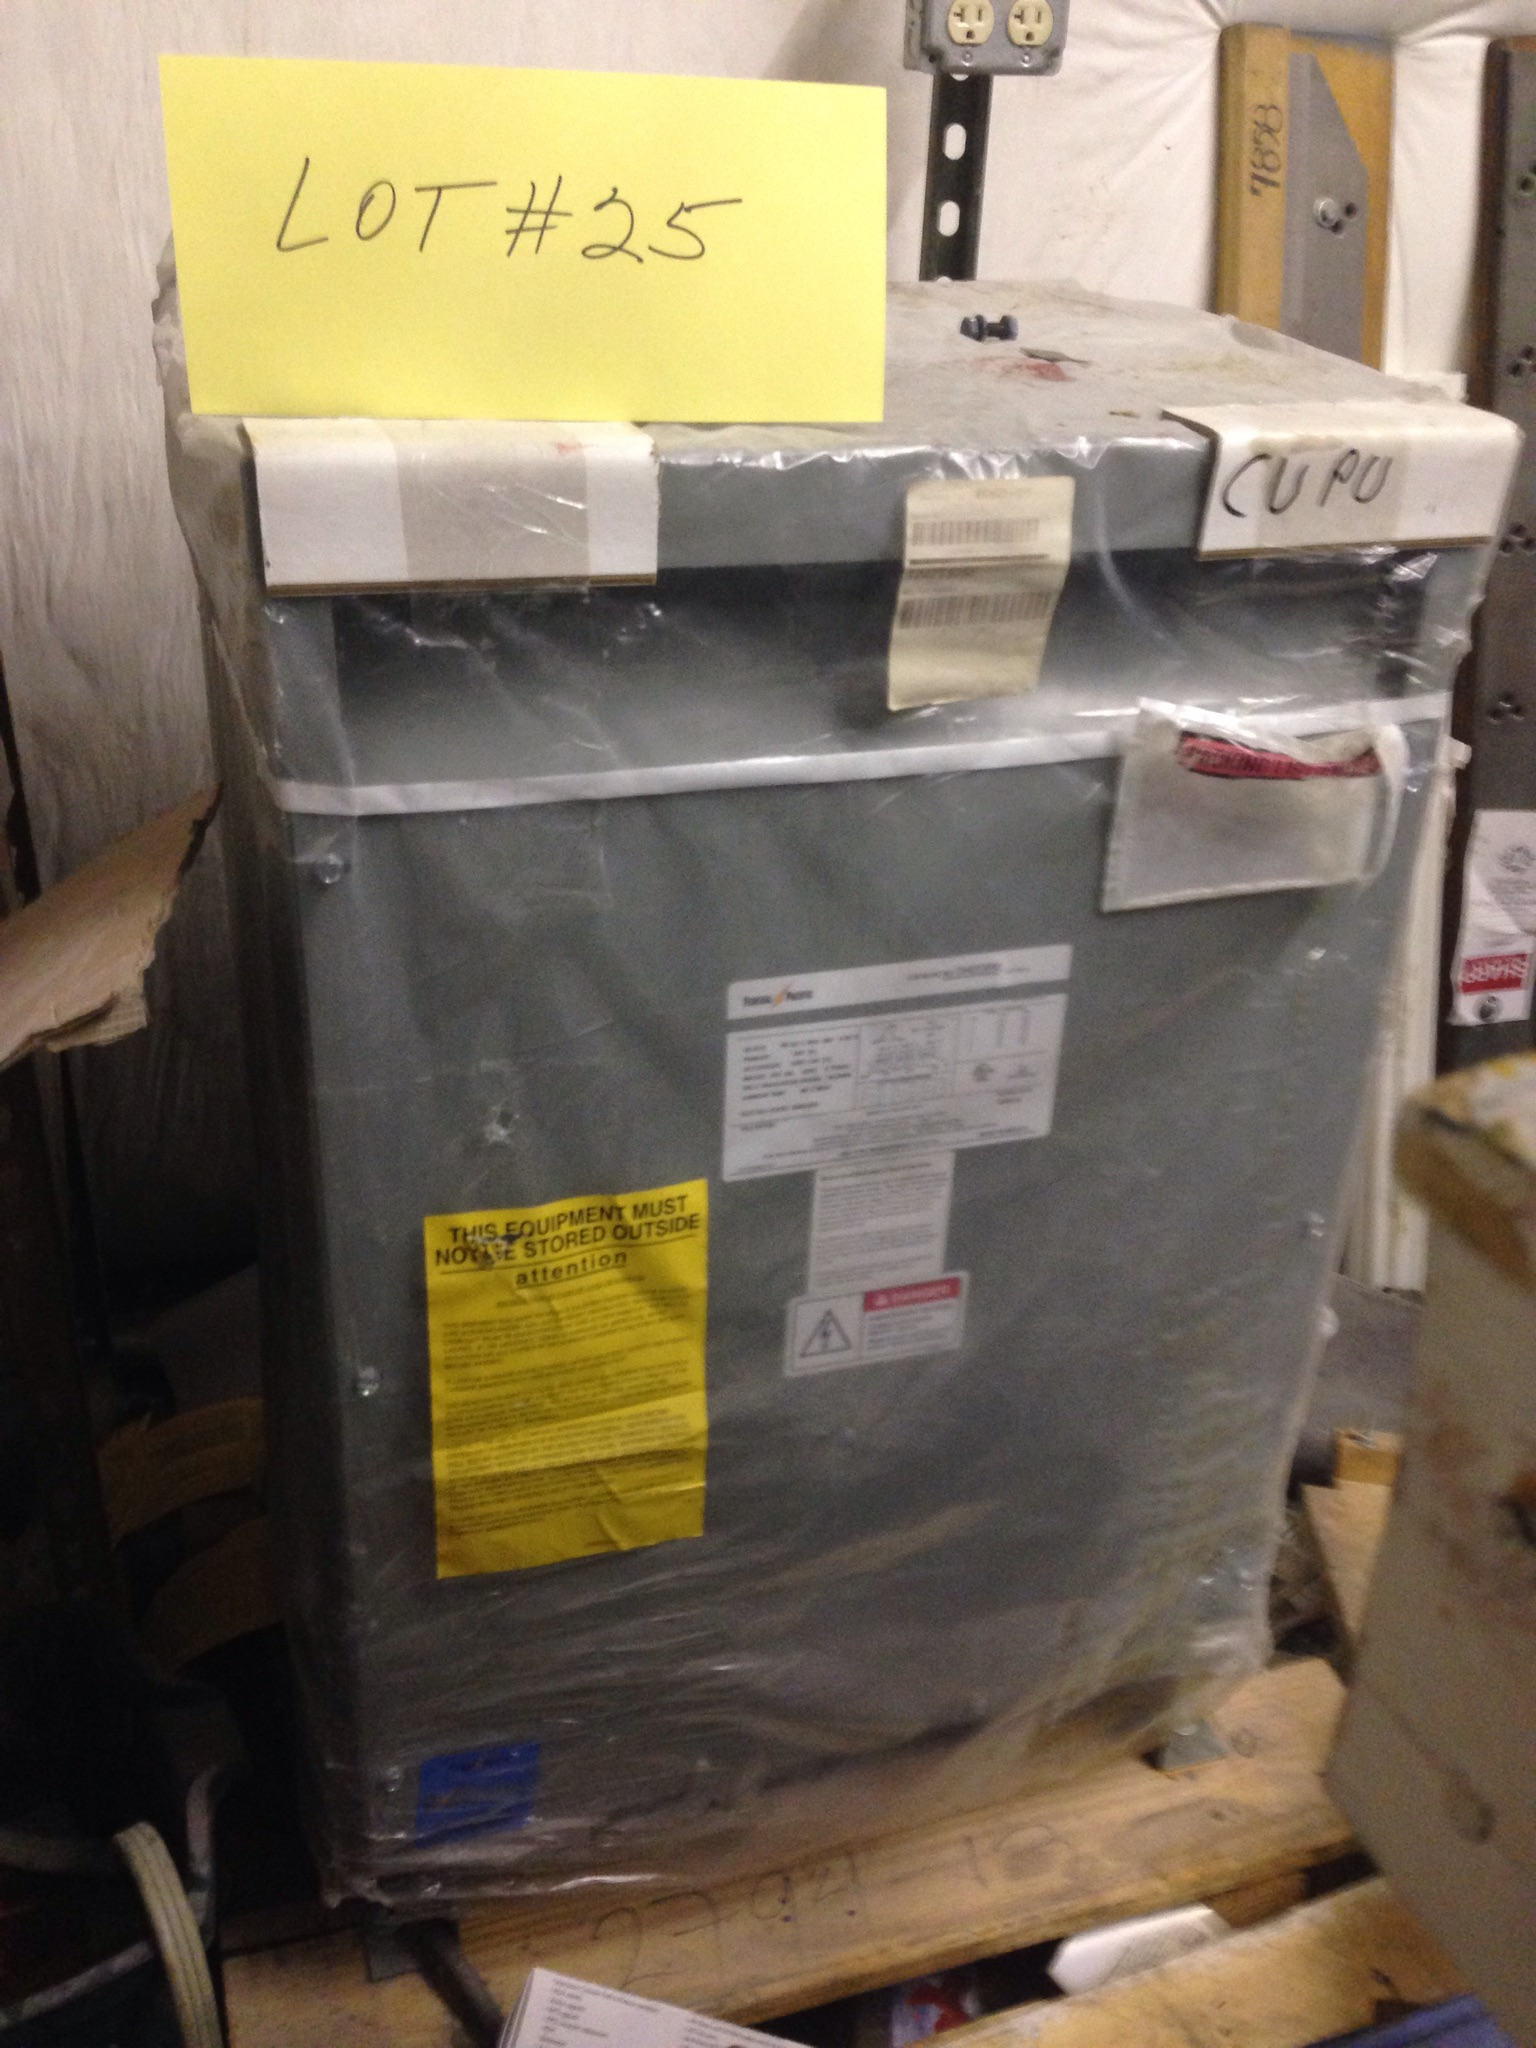 Lot 25 - FEDERAL PACIFIC 30KVA TRANSFORMER CAT NUMBER: T242T30SE 240/220/208V (APPEARS NEW)